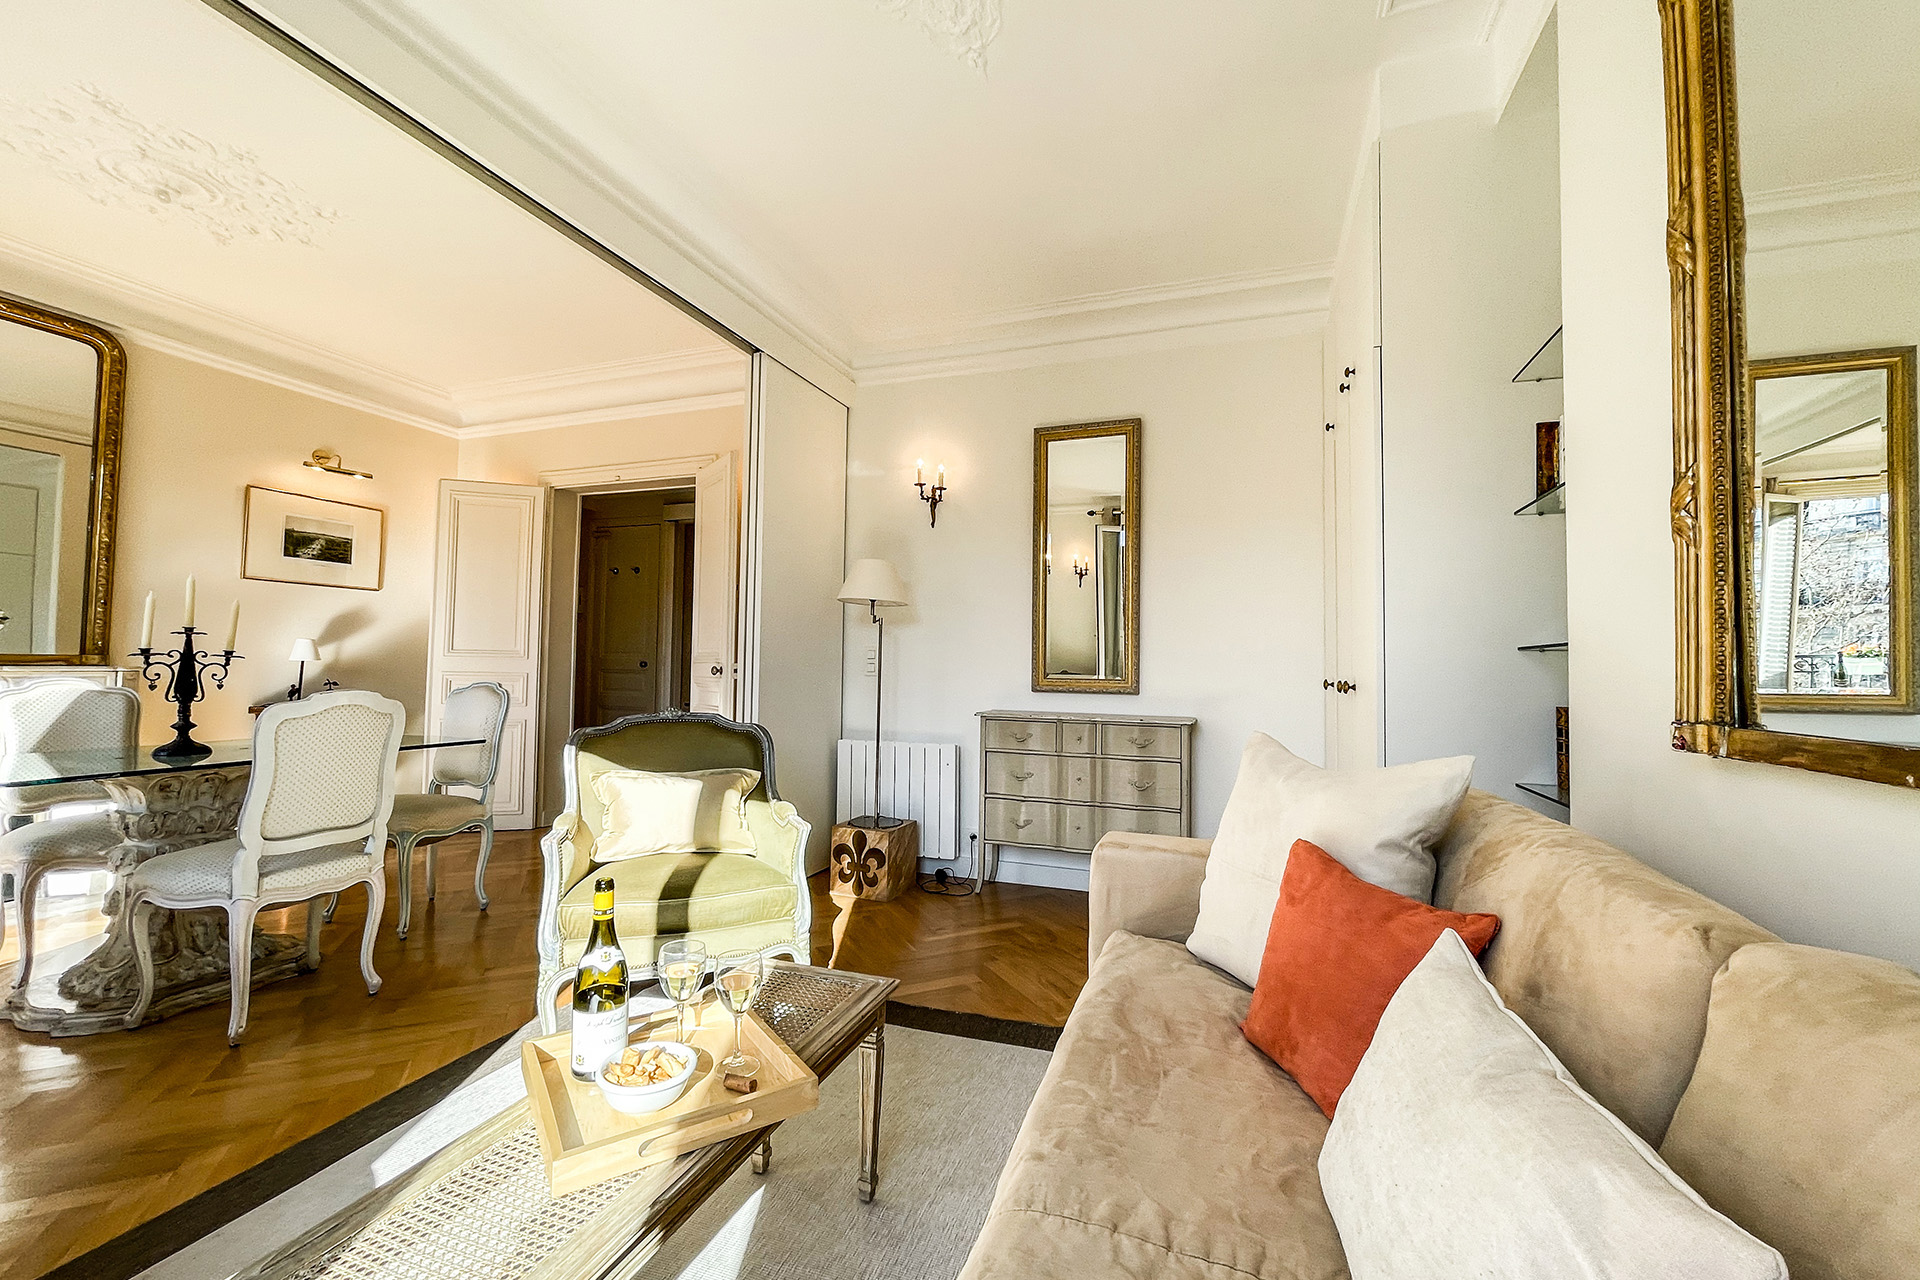 The living and dining rooms can be separated by sliding doors.